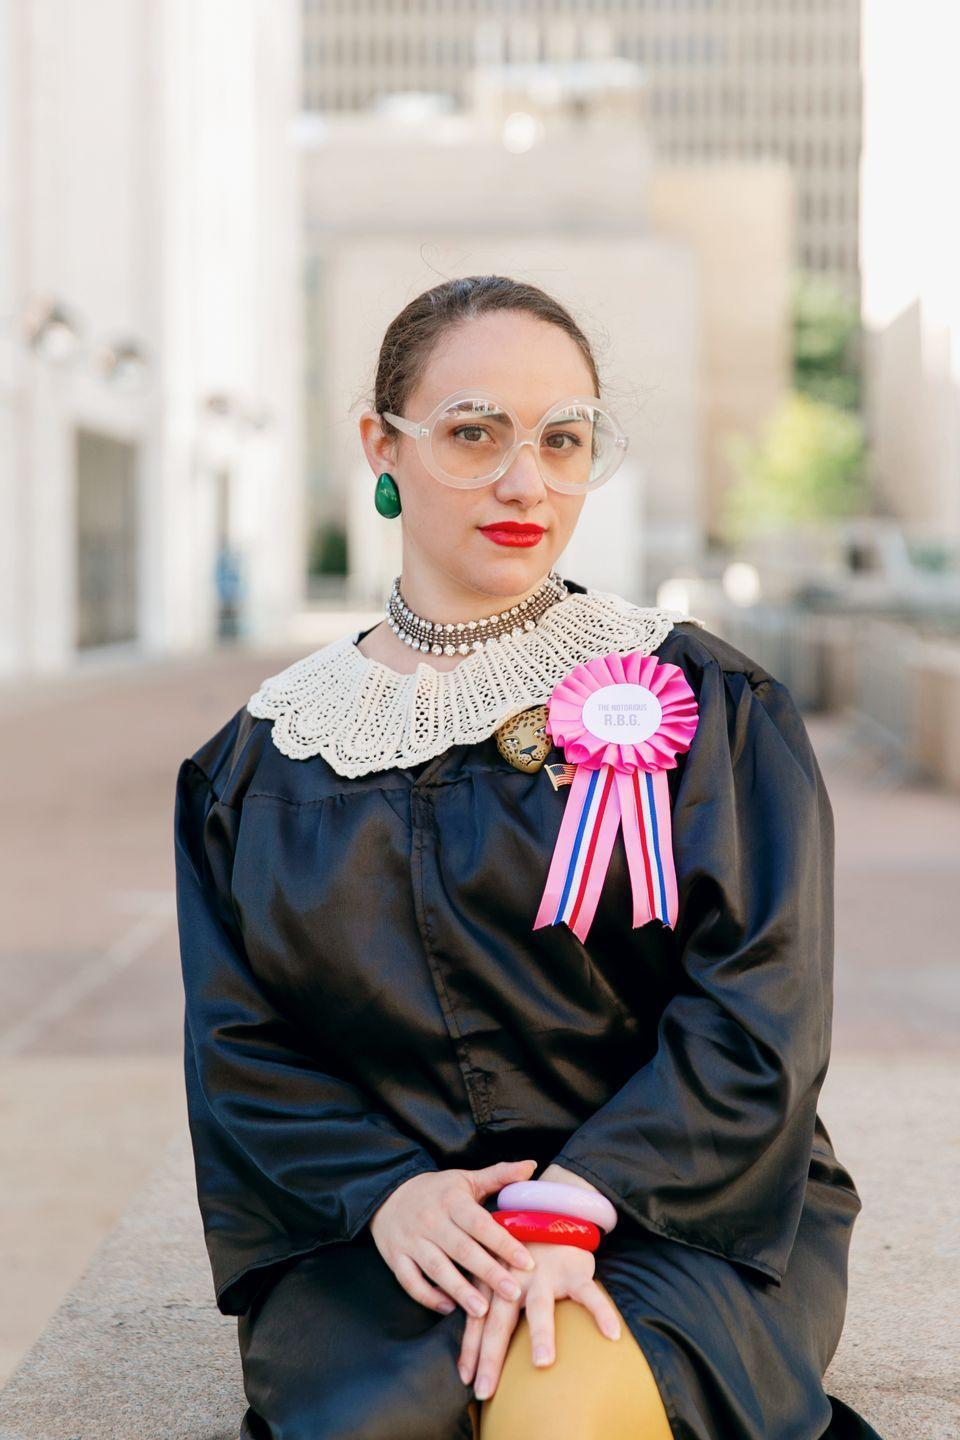 """<p>Pay homage to the second female justice of four to be confirmed to the highest court in our nation. Oversize spectacles and fun earrings make this one instantly recognizable. Pro tip: If you're really short on time, a black bathrobe works just as well as a real black robe.</p><p><a class=""""link rapid-noclick-resp"""" href=""""https://www.amazon.com/GradPlaza-Economic-Finish-inches-59-511/dp/B01GJIV82K?tag=syn-yahoo-20&ascsubtag=%5Bartid%7C10050.g.22118522%5Bsrc%7Cyahoo-us"""" rel=""""nofollow noopener"""" target=""""_blank"""" data-ylk=""""slk:SHOP ROBES"""">SHOP ROBES</a></p>"""